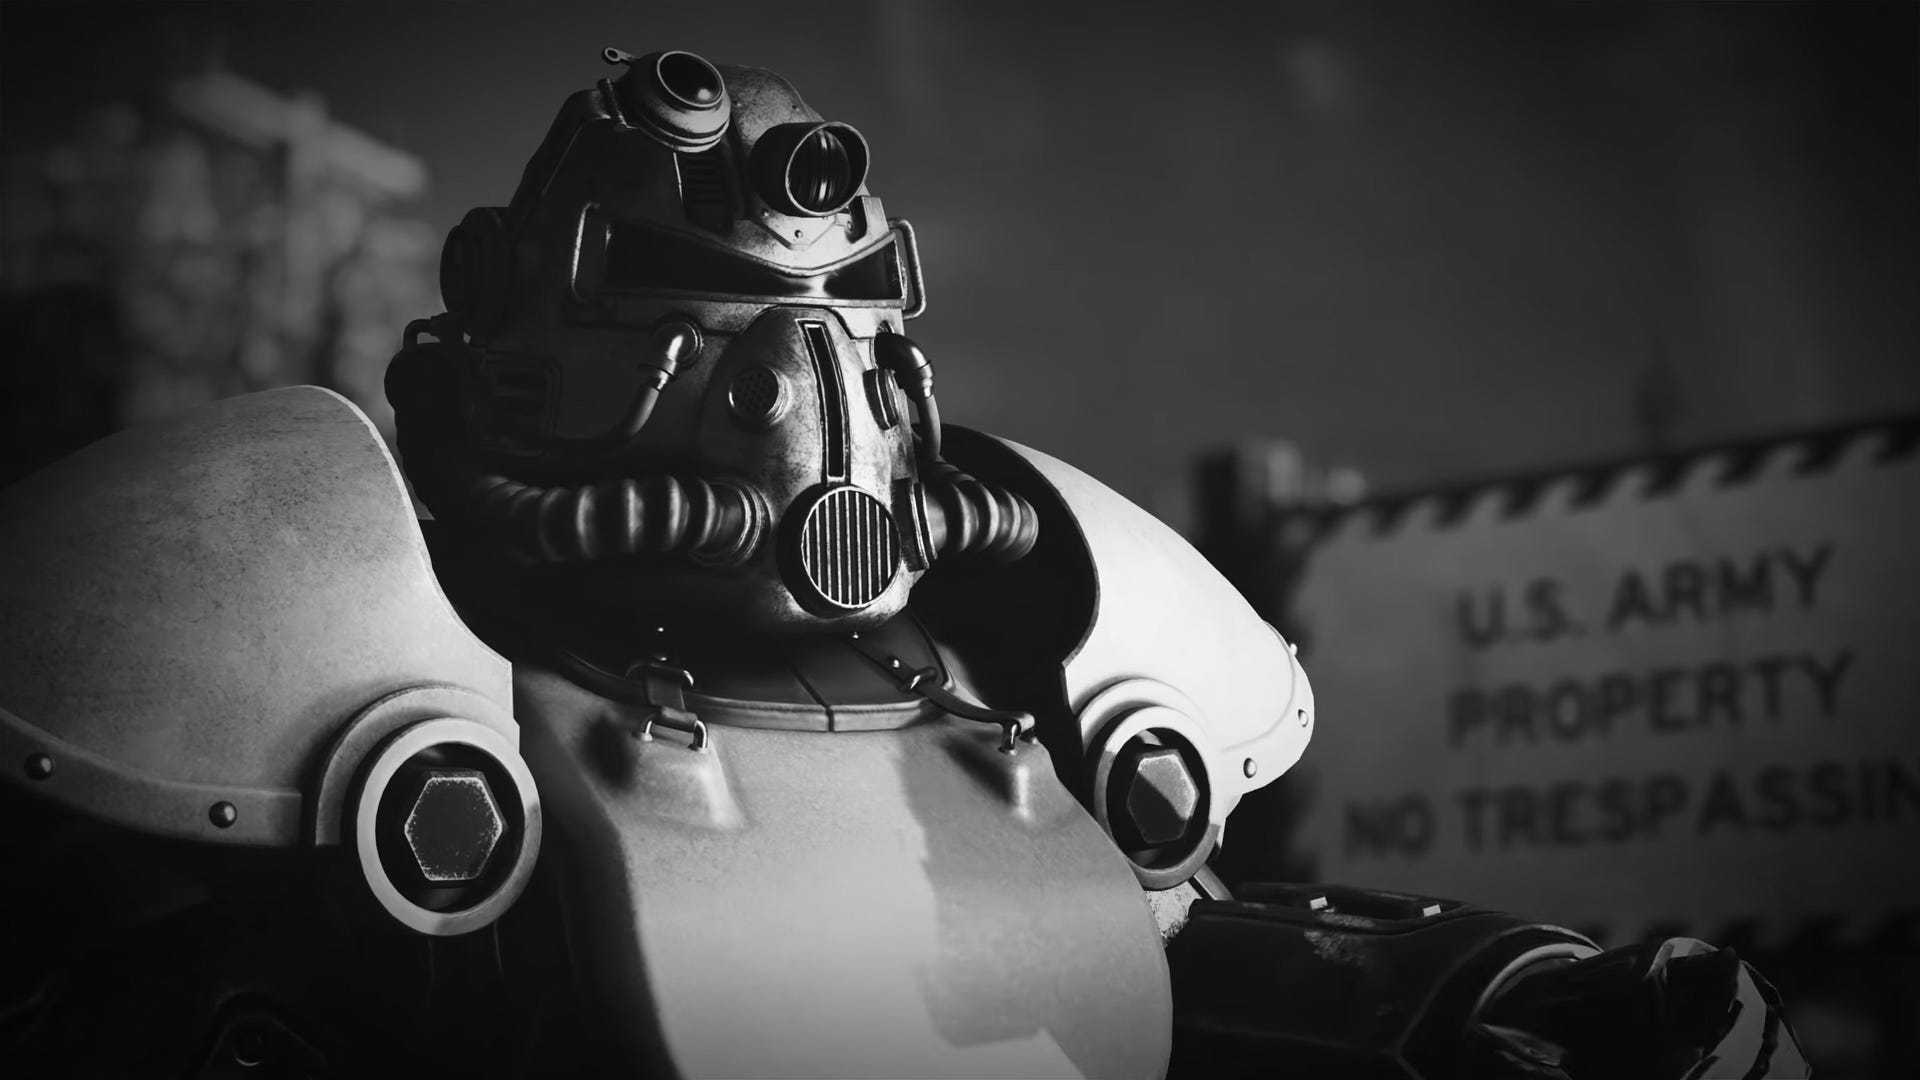 Fallout 76 will punish trolls by painting a target on their back fallout 76 the online multiplayer game set in a post nuclear war world will punish players who harass and kill others by adding a bounty to them gumiabroncs Gallery